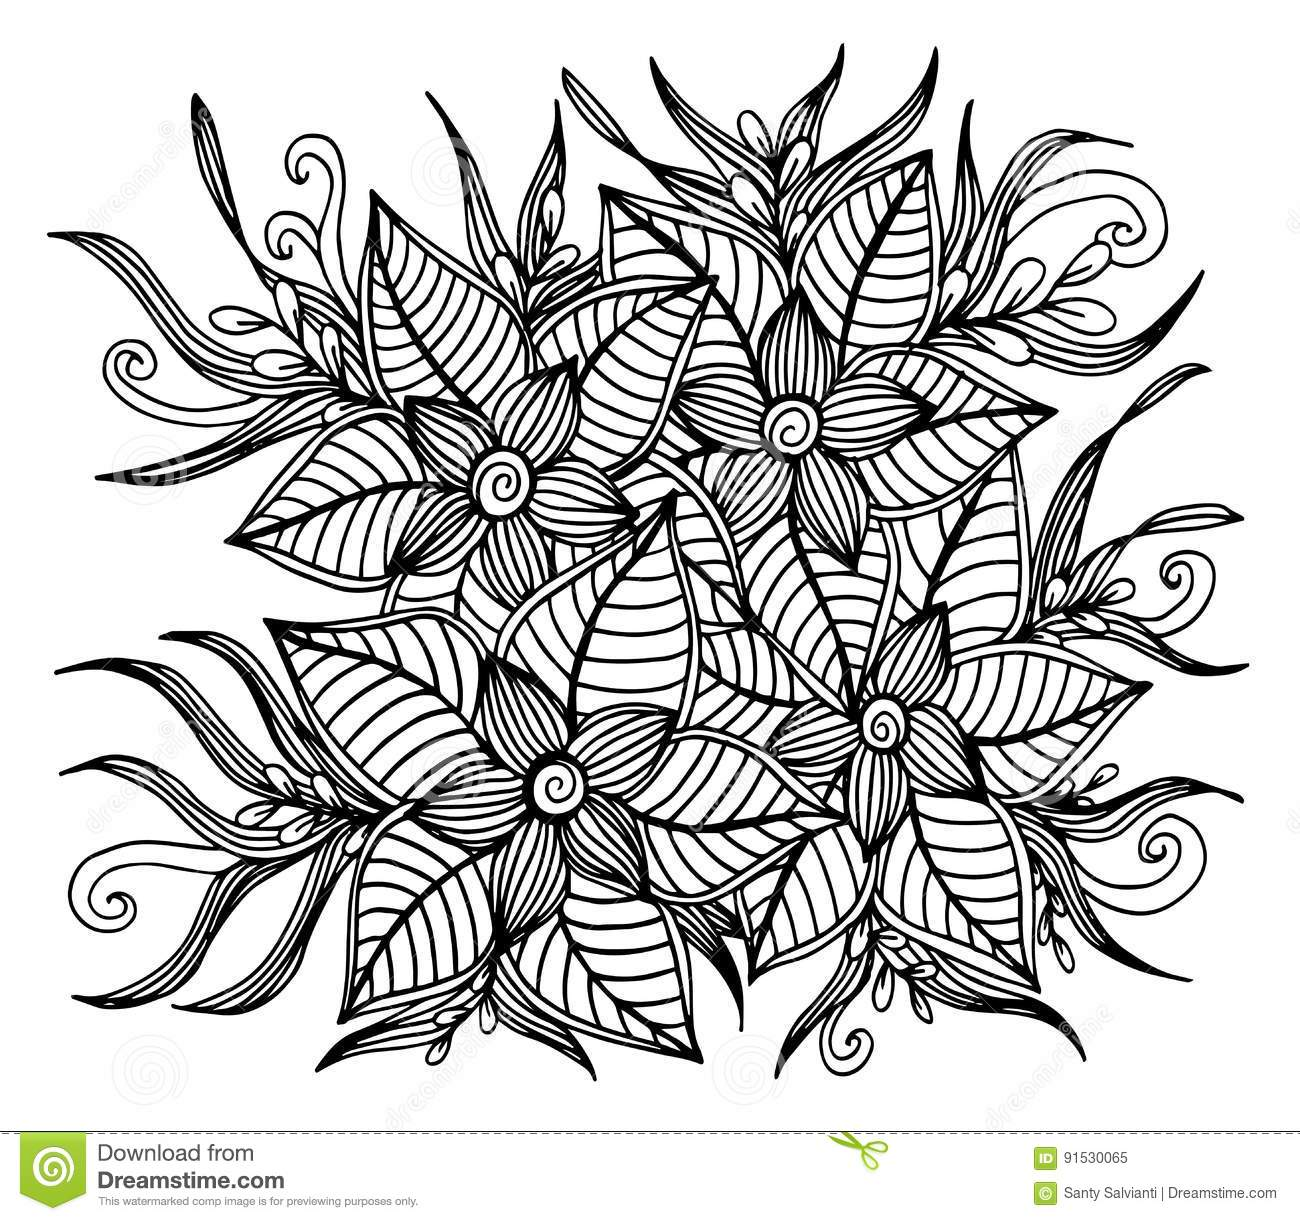 Page For Coloring Book Very Interesting And Relaxing Job Children Adults Zentangle Drawing Flower Carpet In Magic Garden